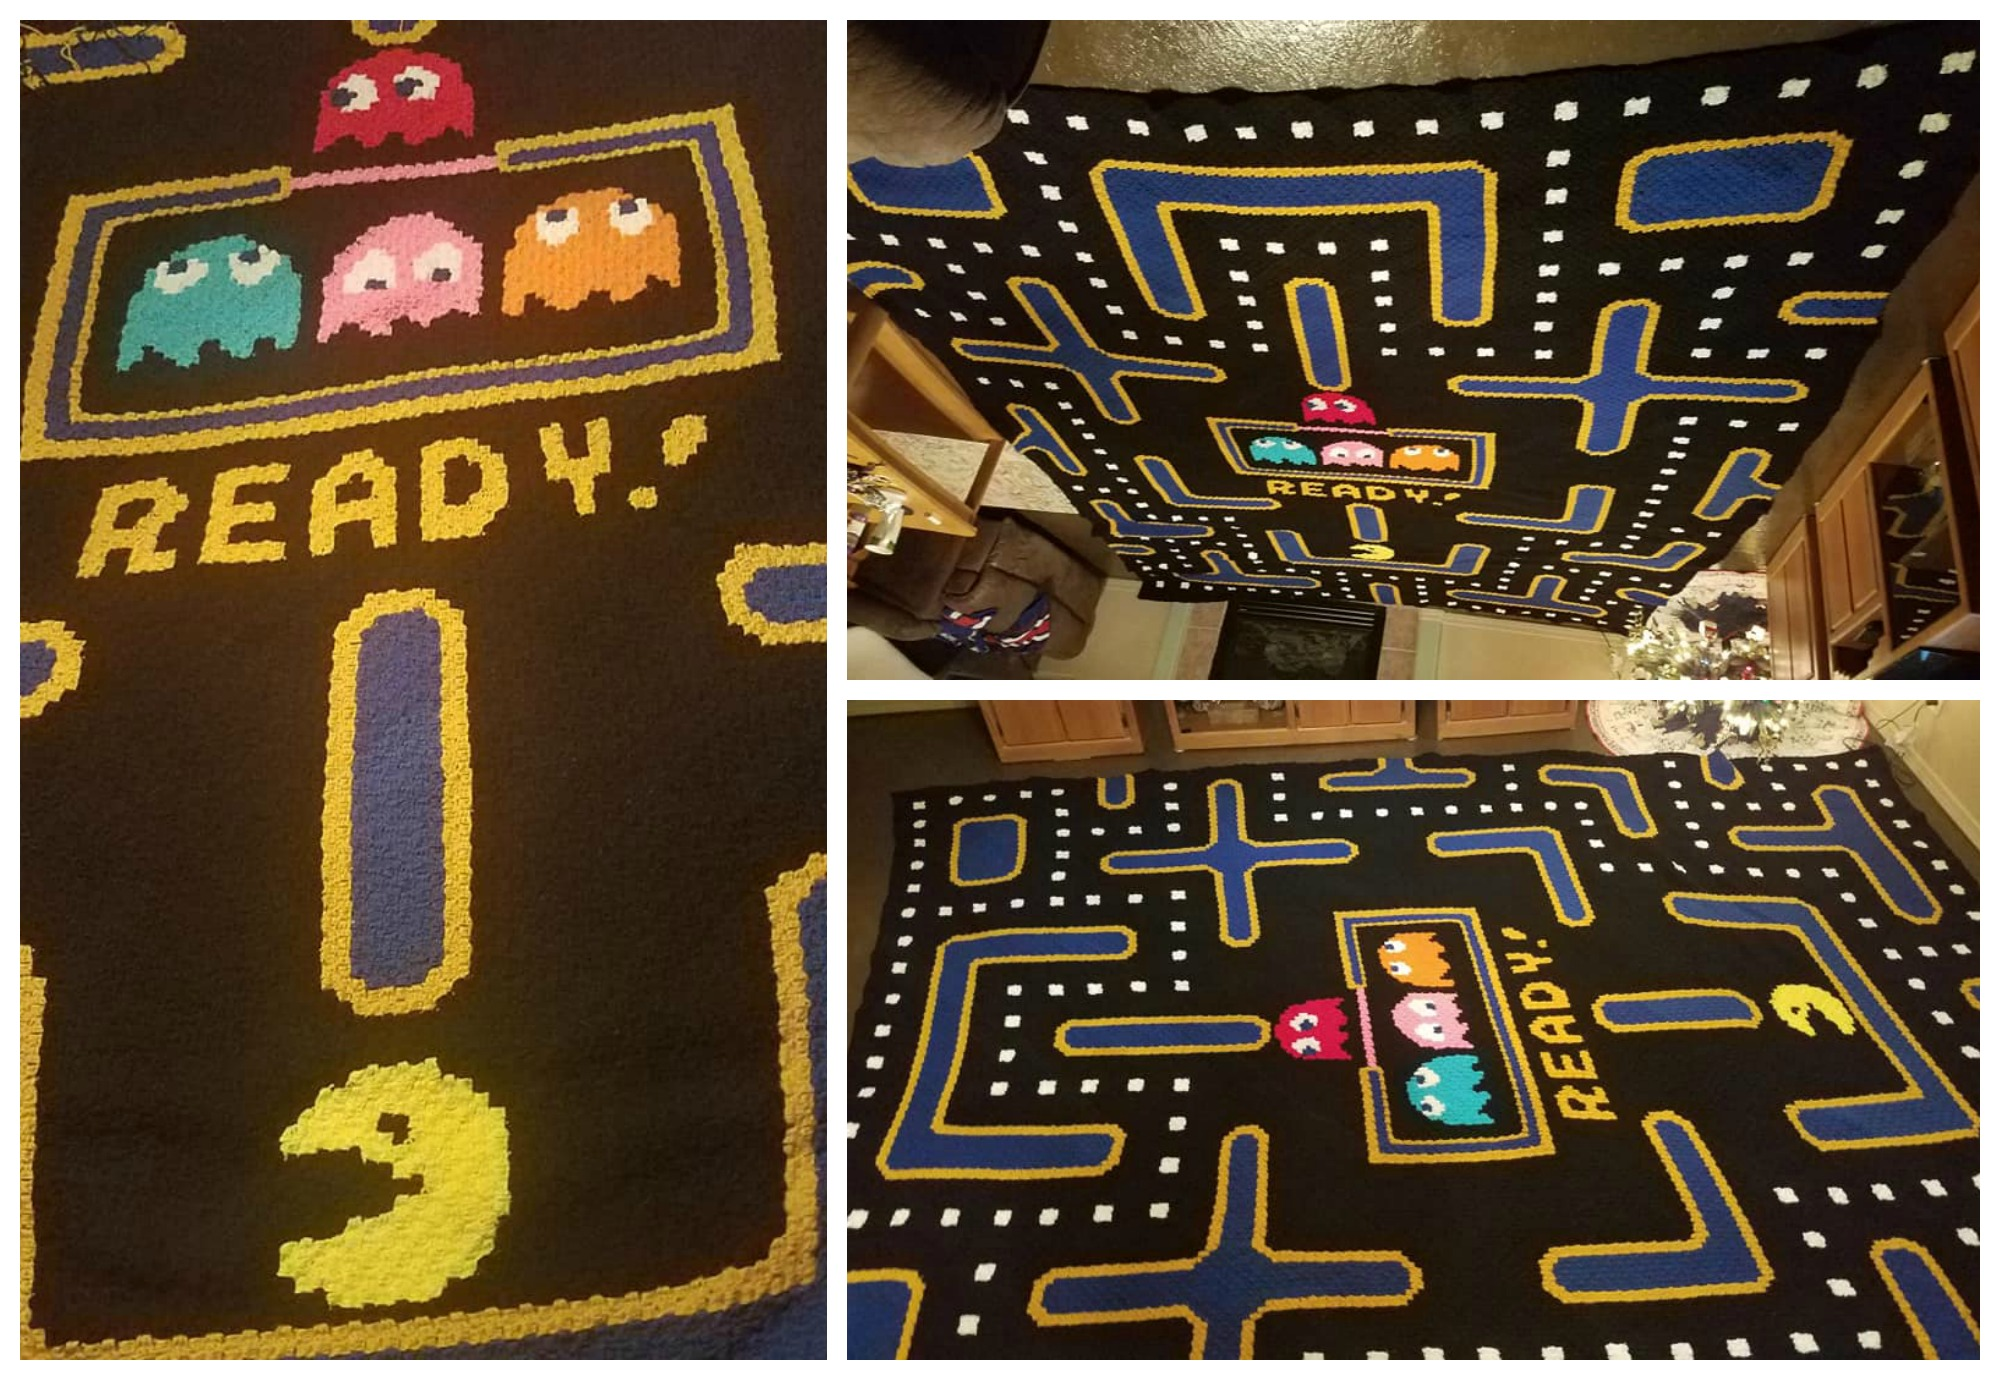 Tori Compoccio's Giant Pacman Afghan Took Over 500 Hours To Crochet ... It's Awesome!